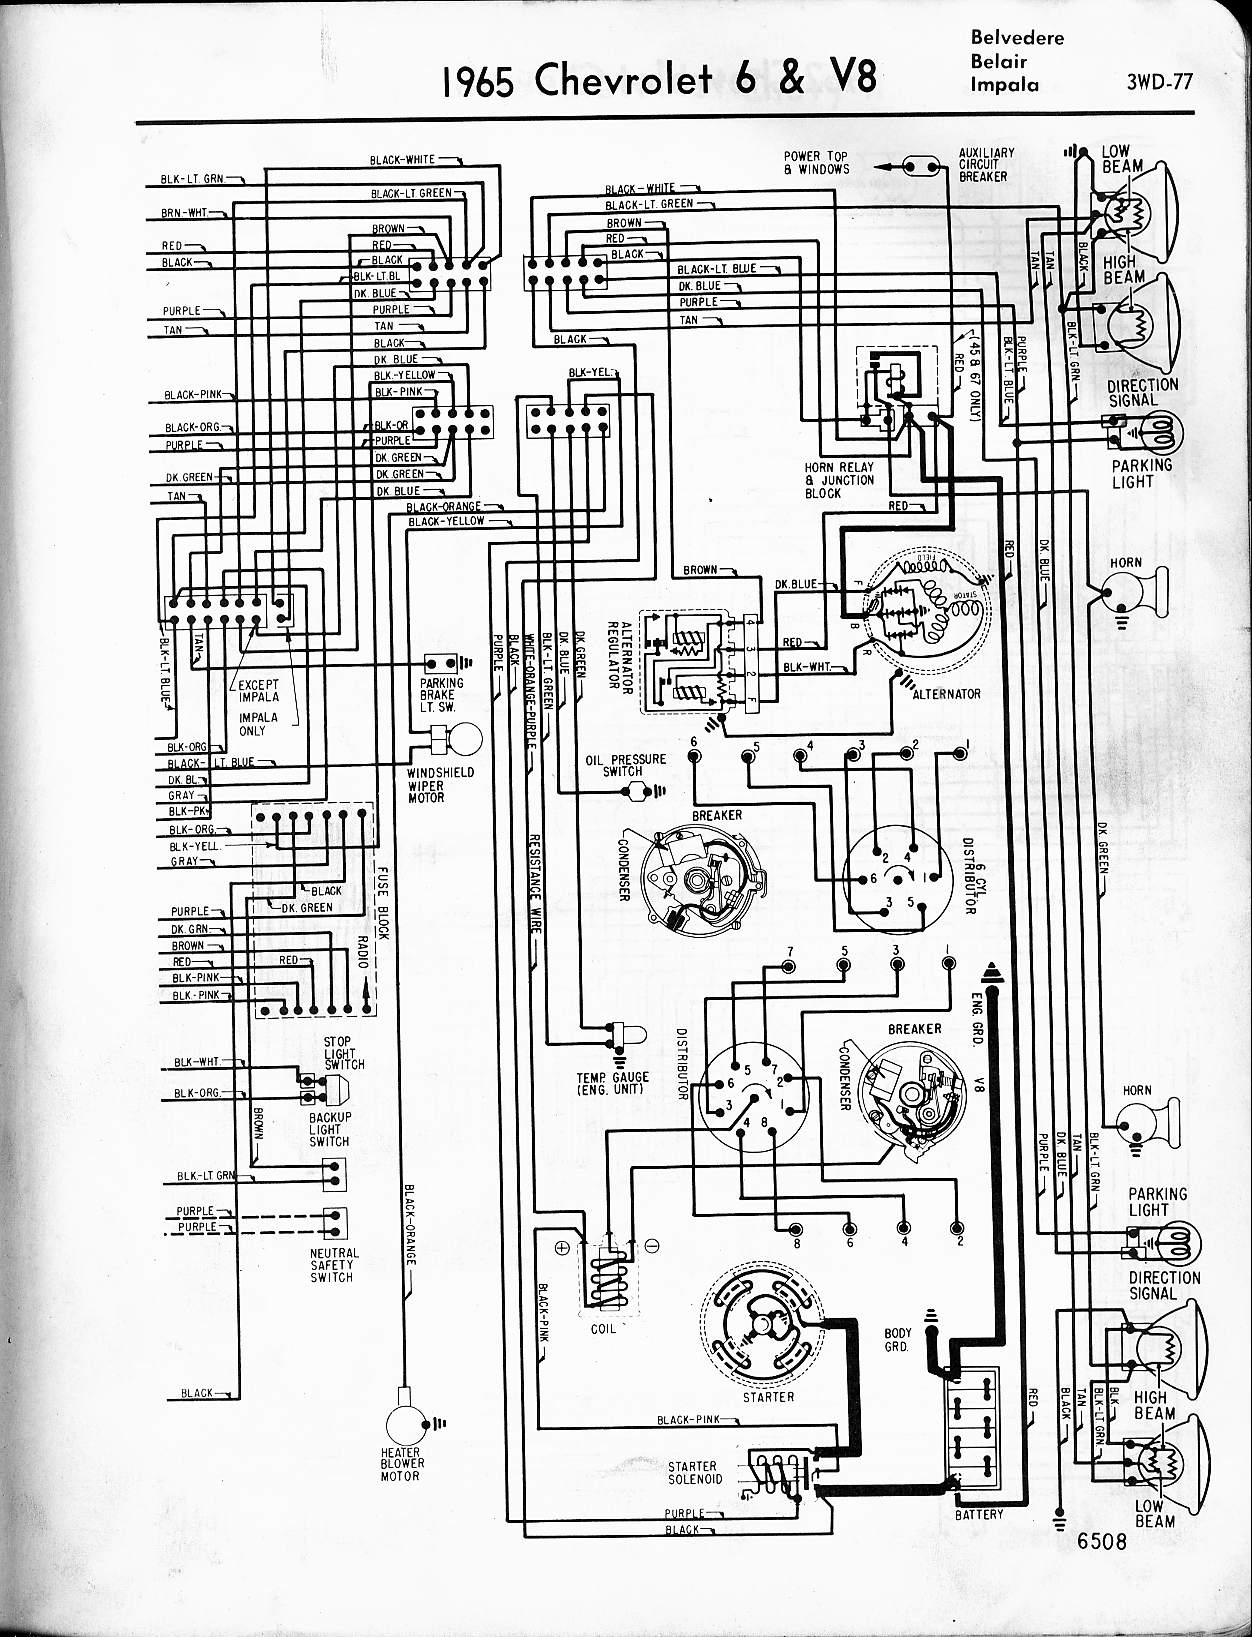 MWireChev65_3WD 077 chevy diagrams 1970 corvette wiring diagram at honlapkeszites.co